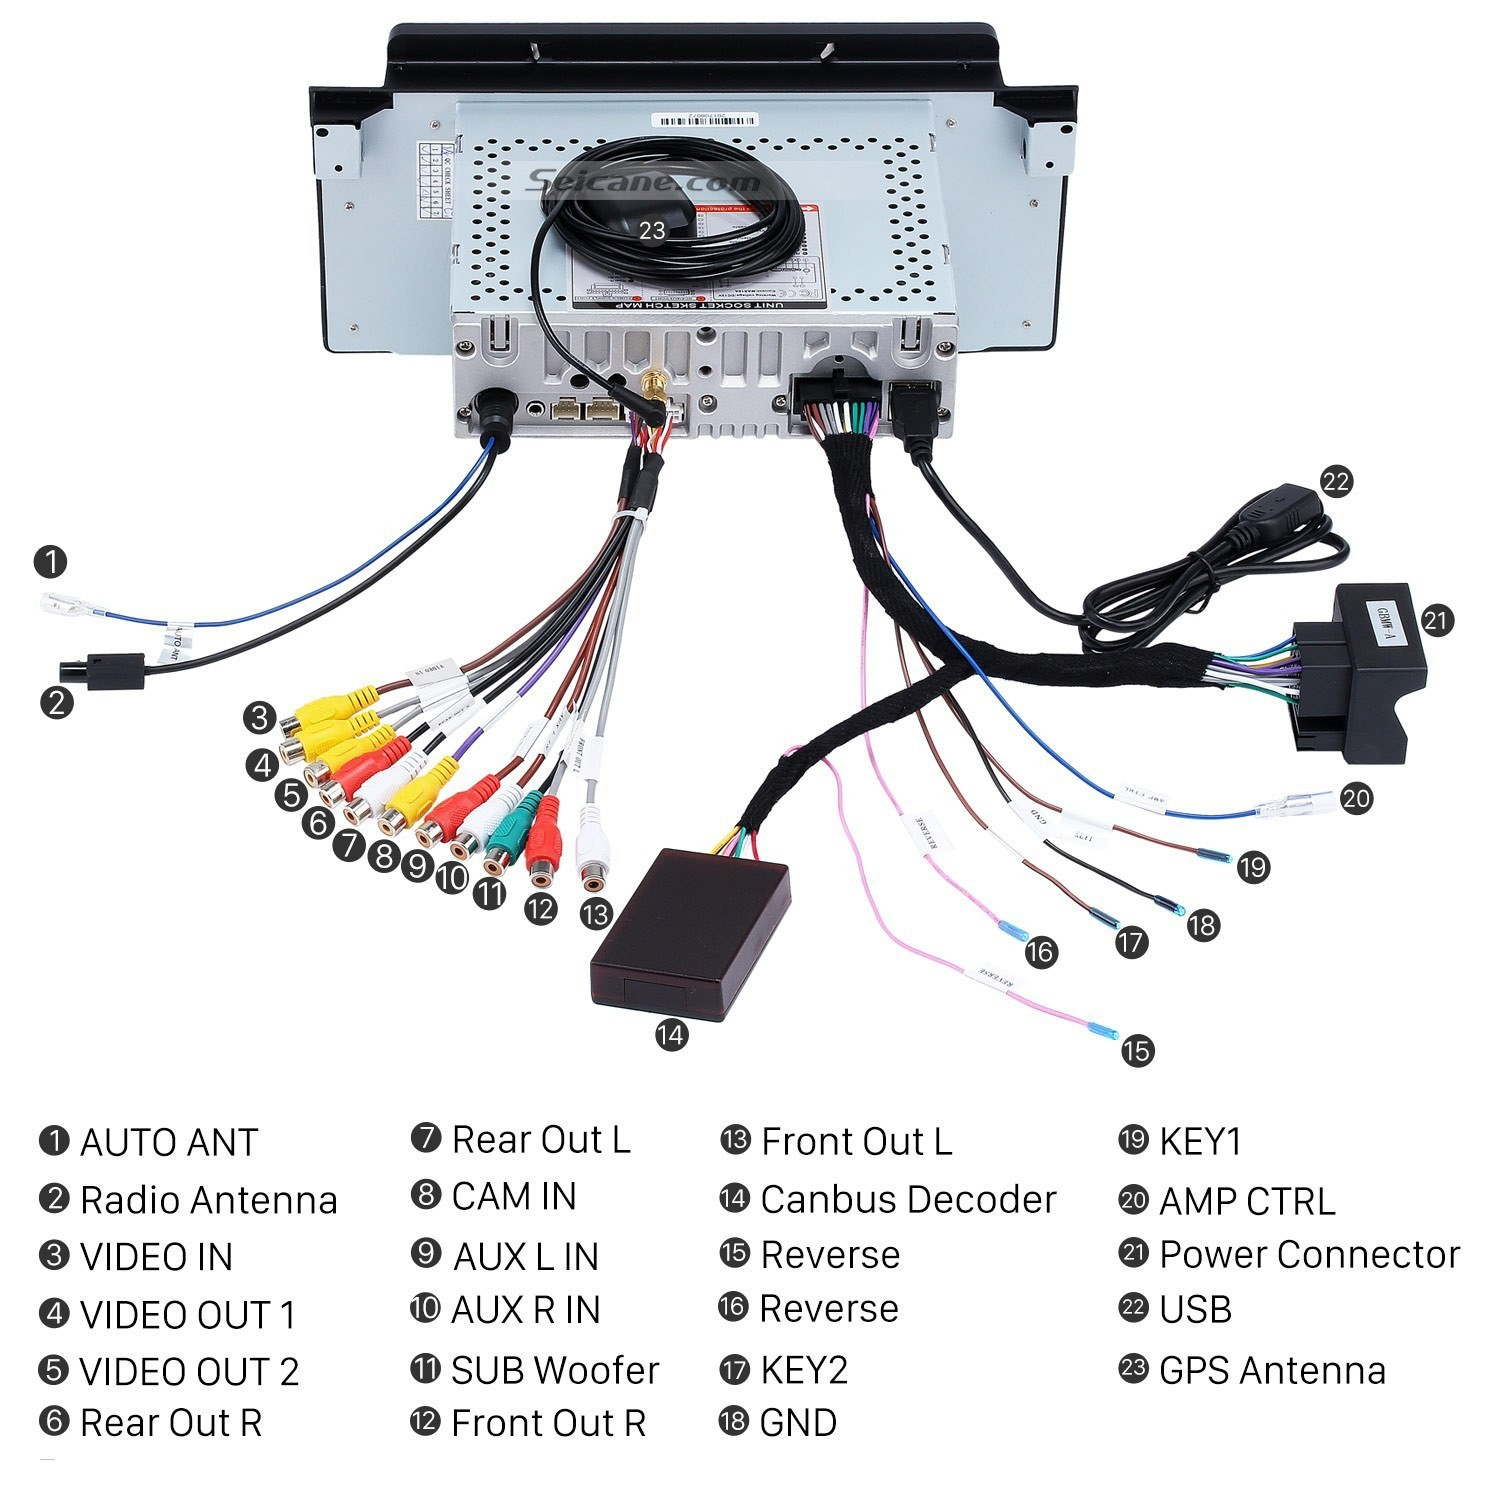 Cable Wire Diagram Newest Light Wiring Diagram Best Inch 2000 2007 Bmw X5 E53 3 0i